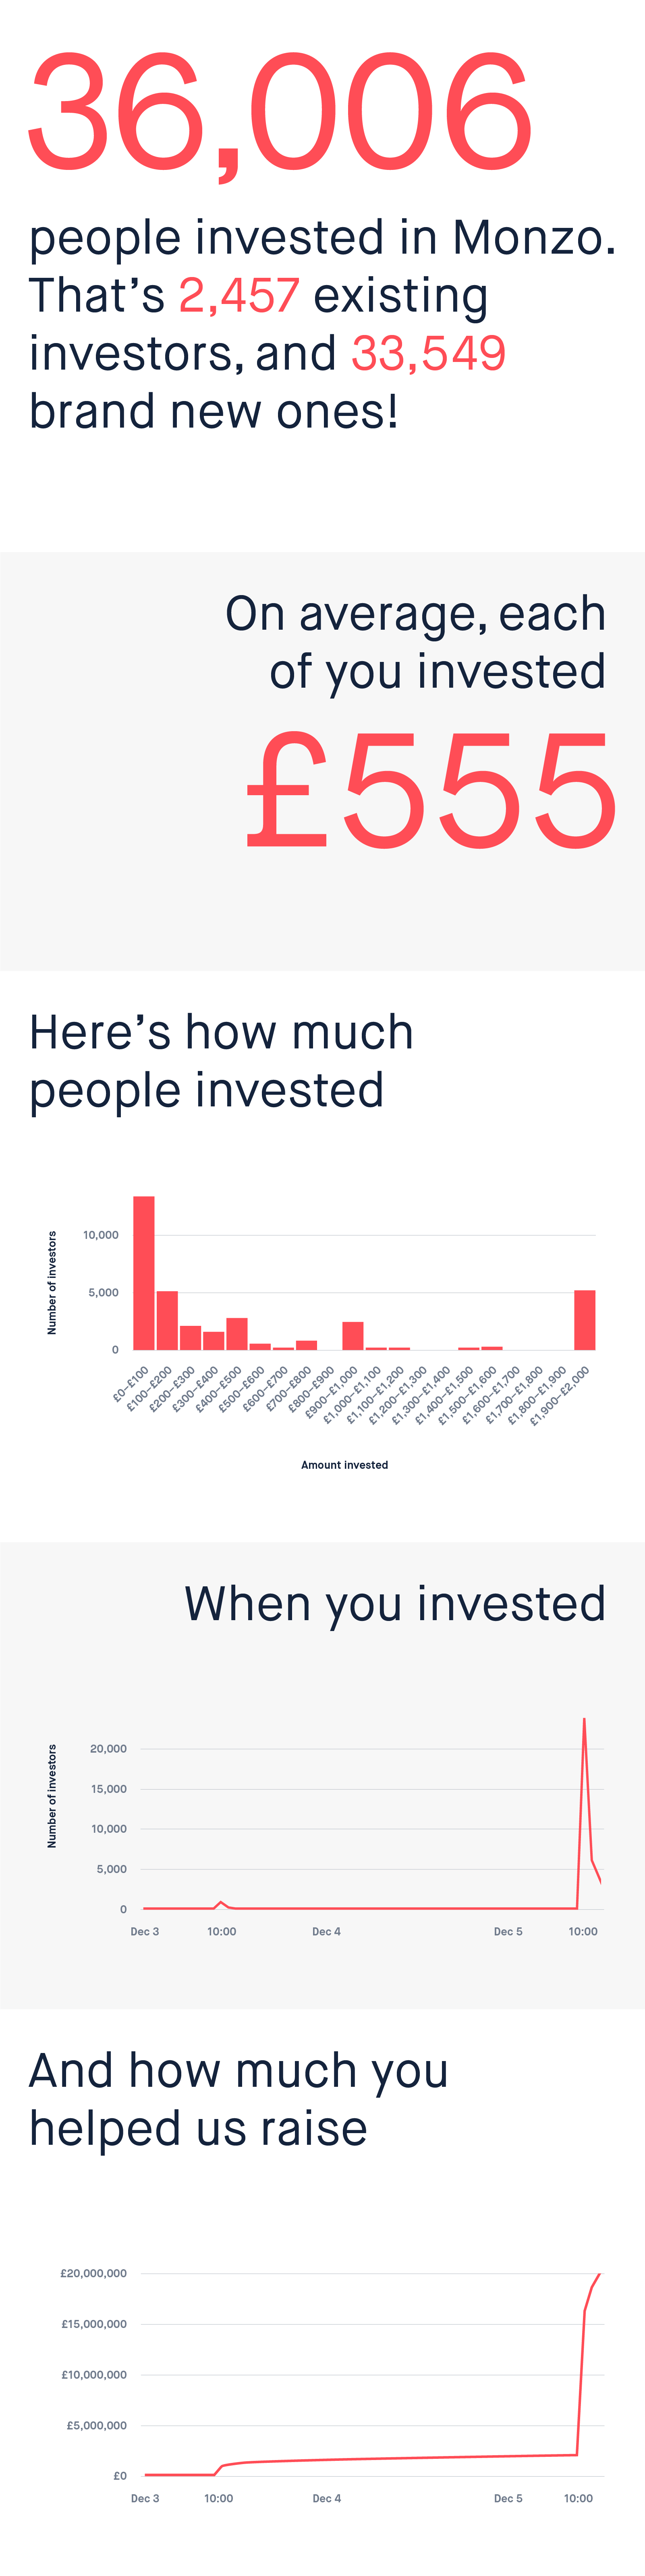 36,006 people invested in Monzo. That's 2,457 existing investors, and 33,549 brand new ones!           On average, each of you invested £555.